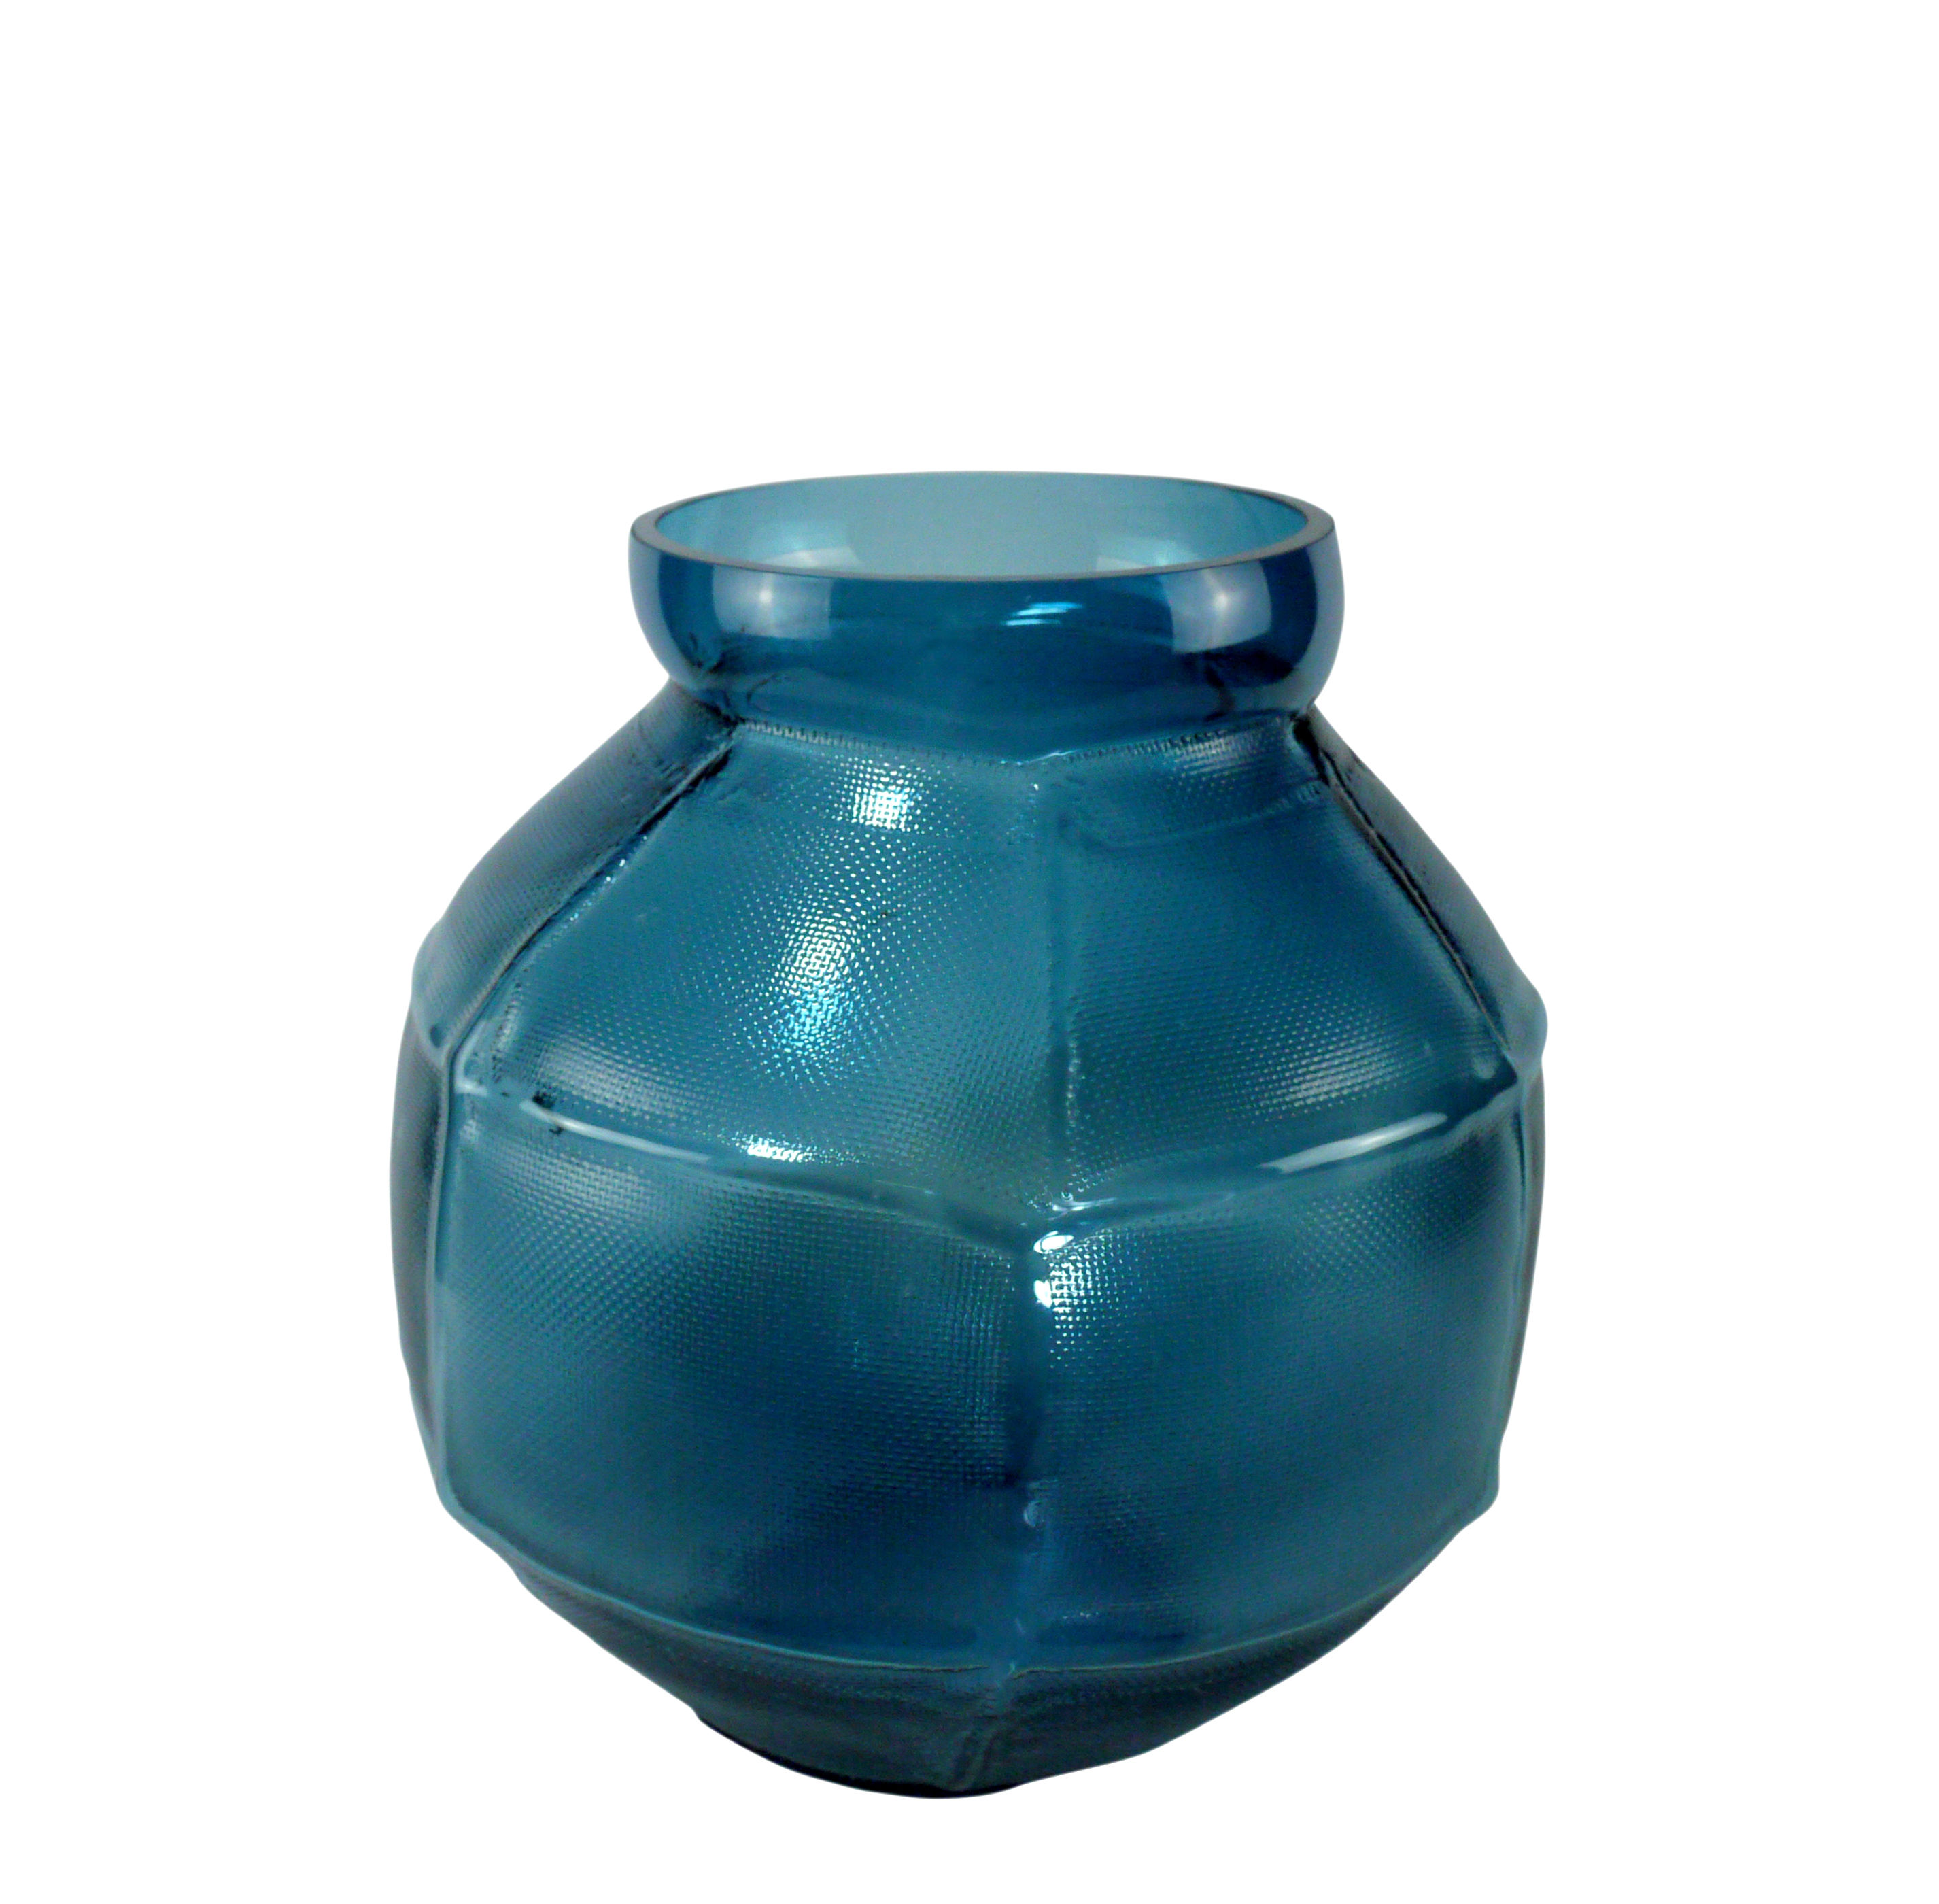 Decoration - Vases - Trace rond Vase - / L 28 x H 35 cm by Vanessa Mitrani - Peacock blue - Blown glass